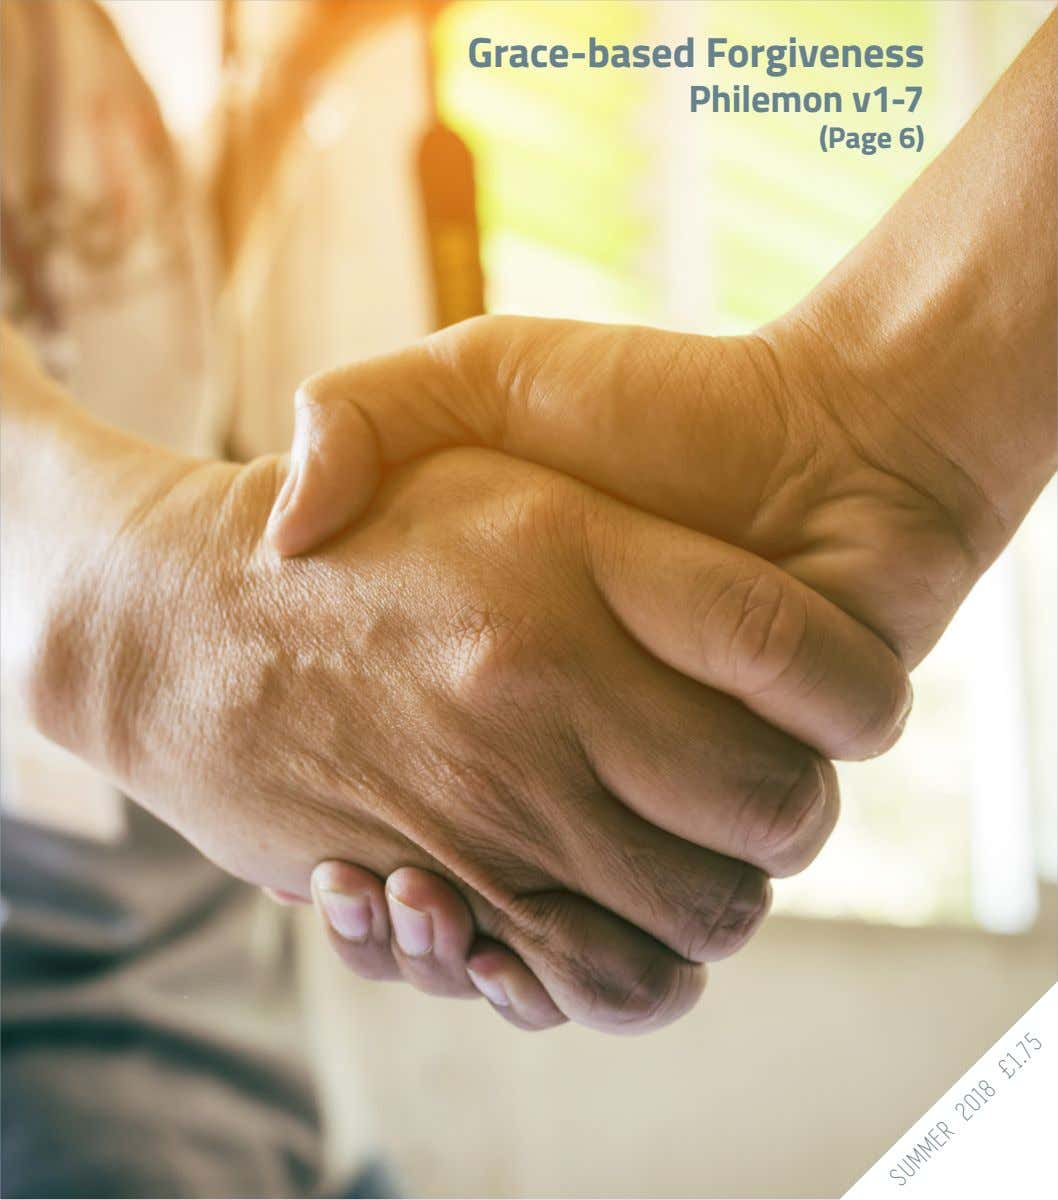 Grace-based Forgiveness Philemon v1-7 (Page 6) 2018 £1.75 SUMMER